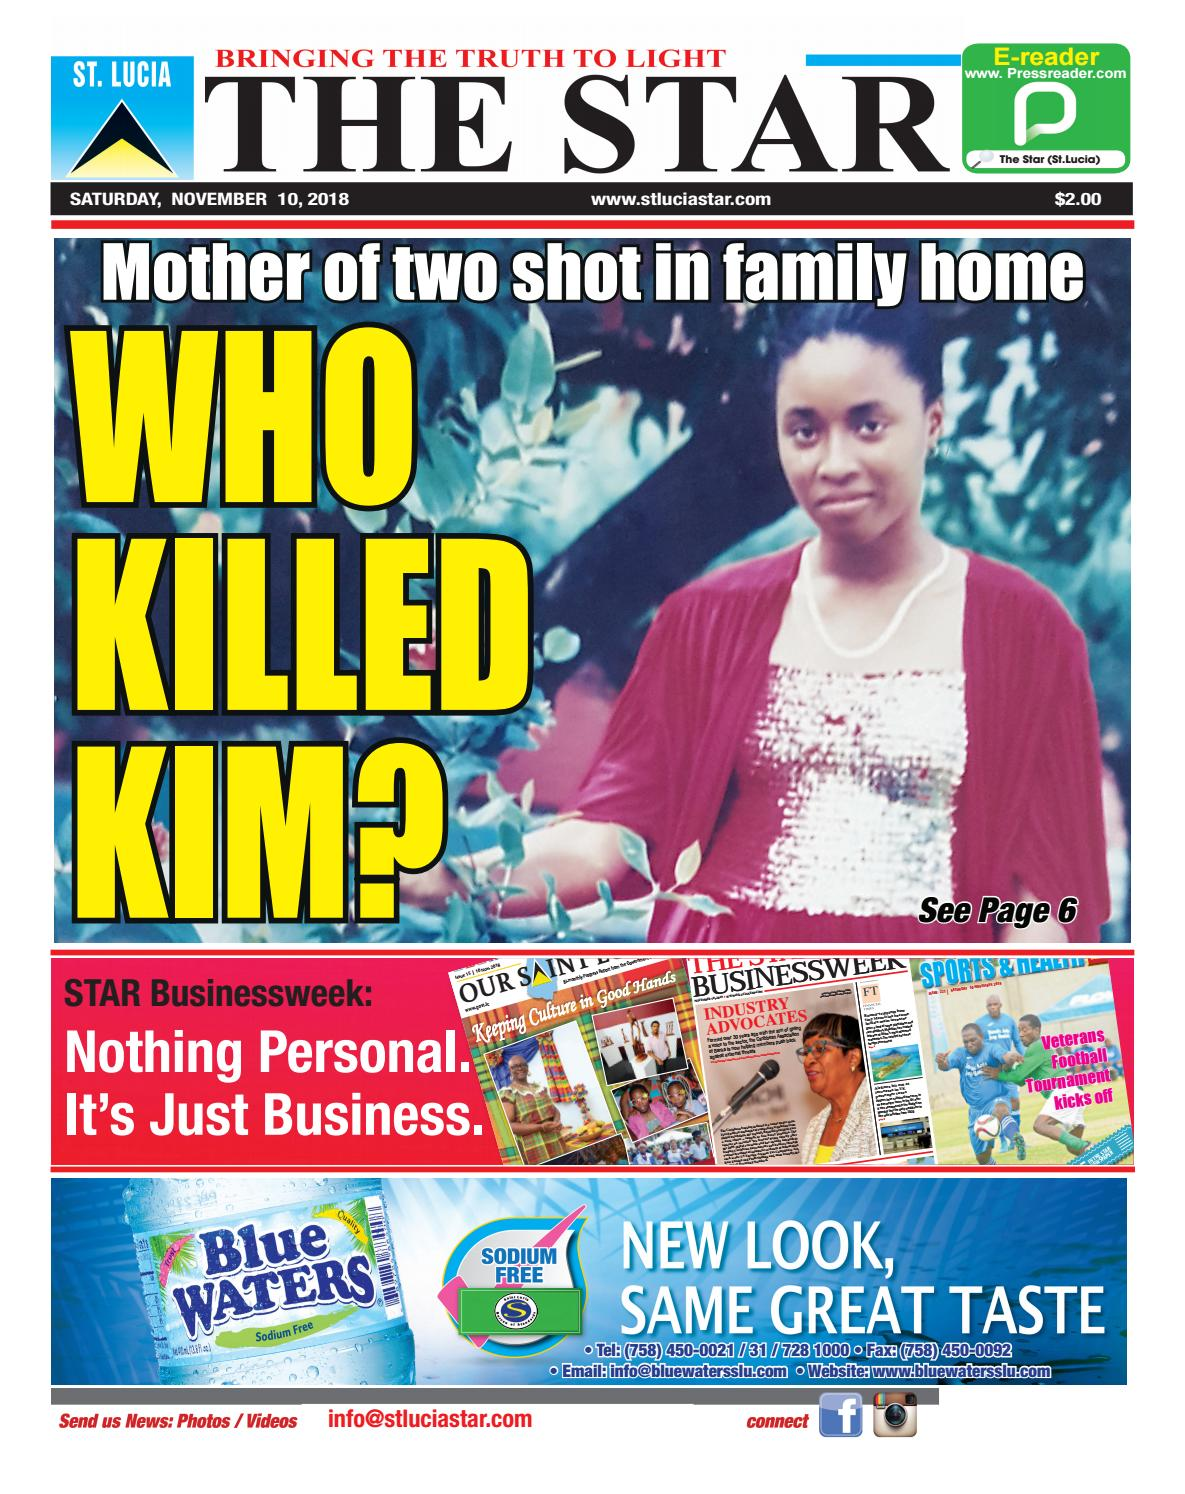 1413f53c4e Mother of two shot in family home by STAR Publishing - issuu